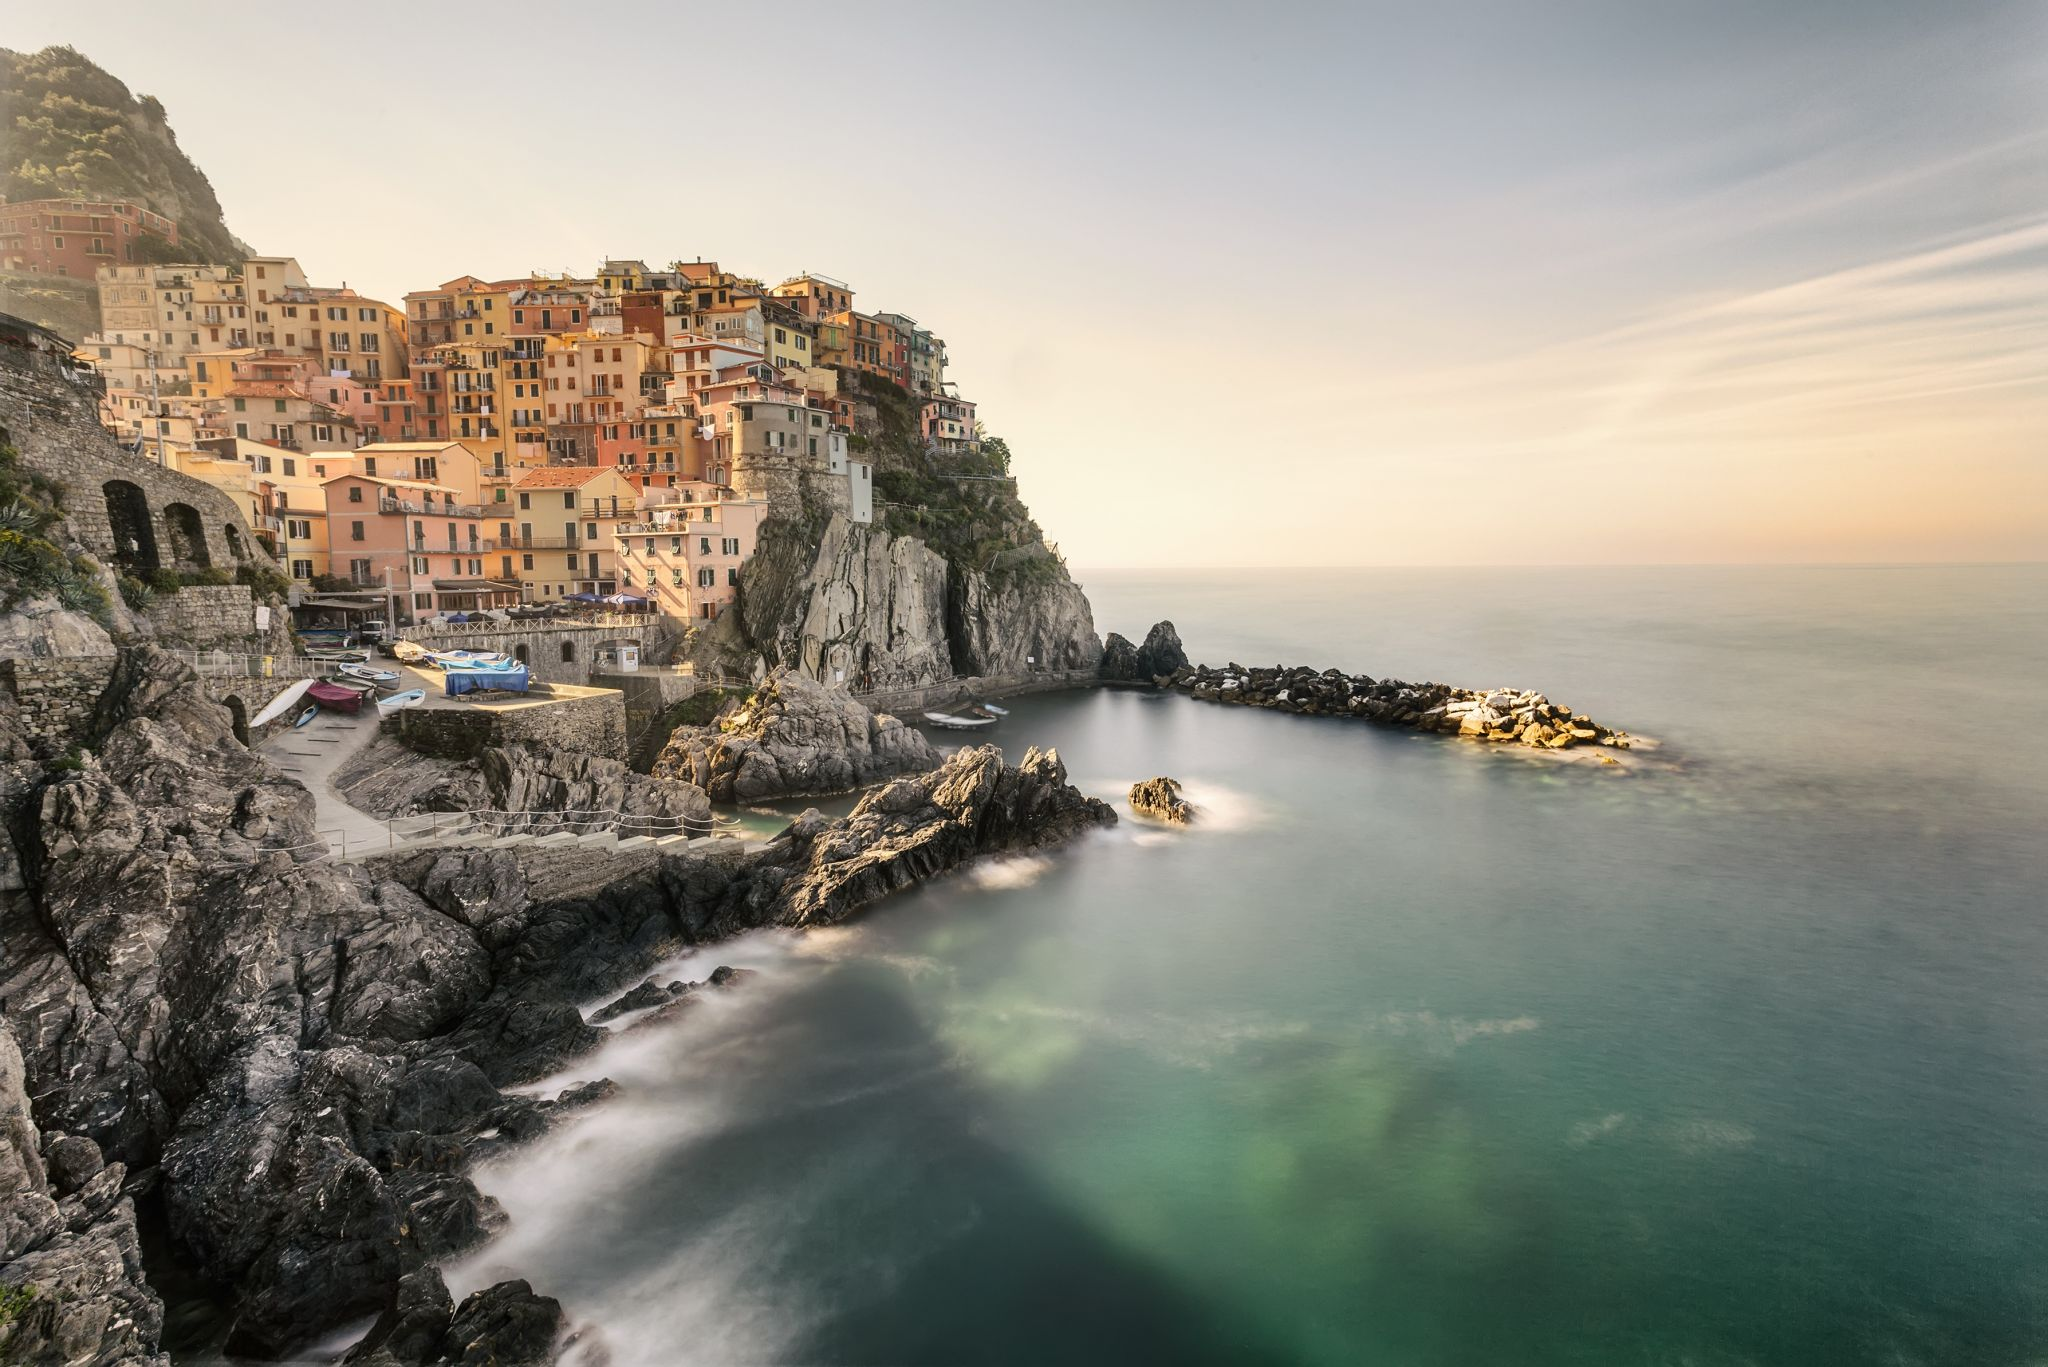 Manarola in the morning, Cinque Terre, Italy